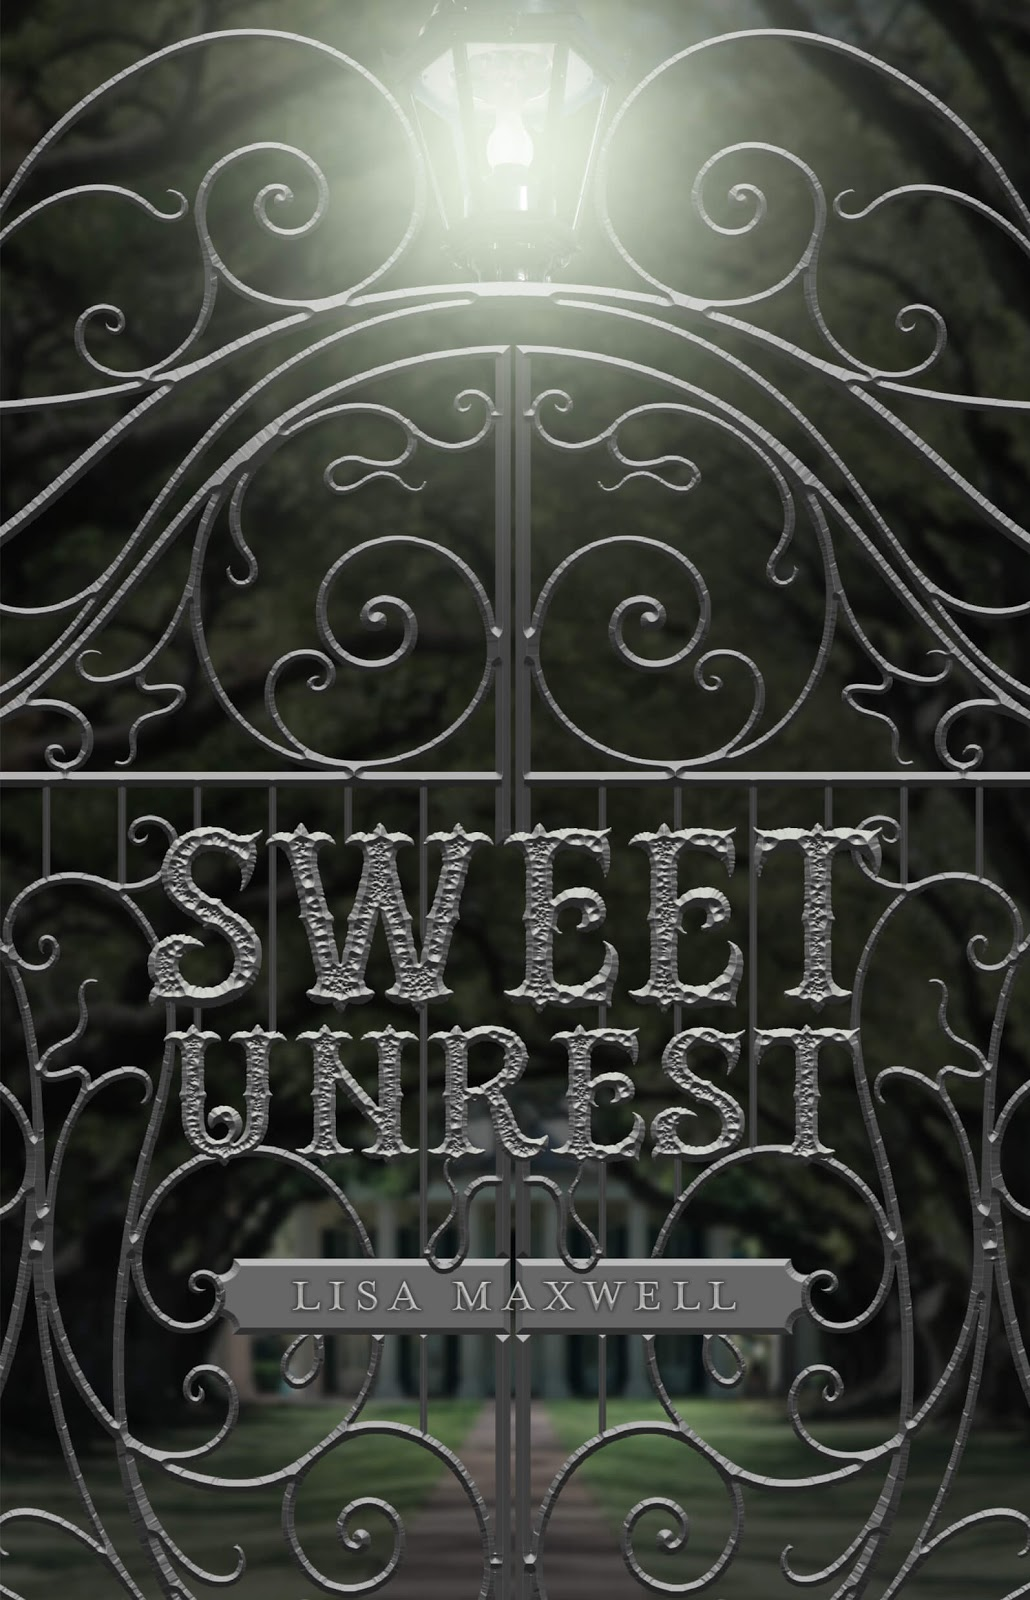 Sweet Unrest (Lisa Maxwell)